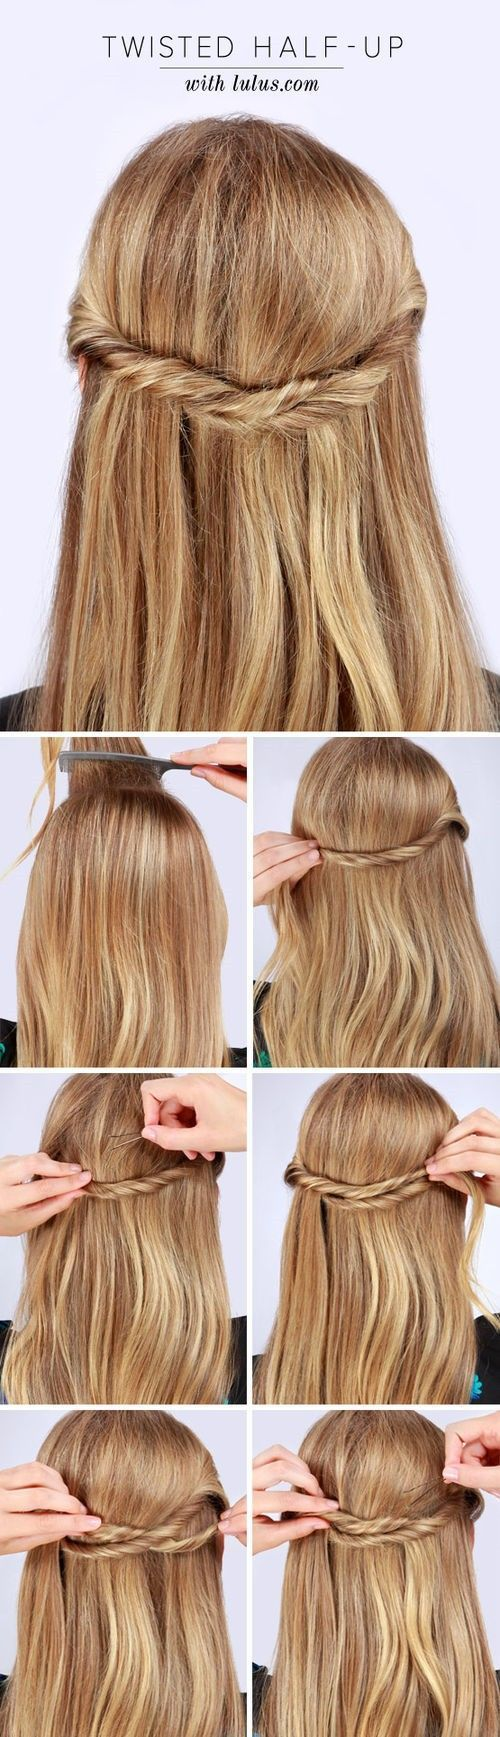 Inspirational wedding hairstyles for straight long hair down Inspiring wedding hairstyles for straight long hair down #brown hairstyles #nivea #brown hairstyles #down #somebar #beach hairstyles # bridal hairstyles2018 #styles #hairstouching #fresh #short hairstyles #flowers #romantic #styles # for #straight #Hair #wedding #Inspirational #Lange # after # below #Flowers #Bride hairstyles # bridal hairstyles2018 #brown hairstyles #brown hairstylesmedium #fresh #frrisu